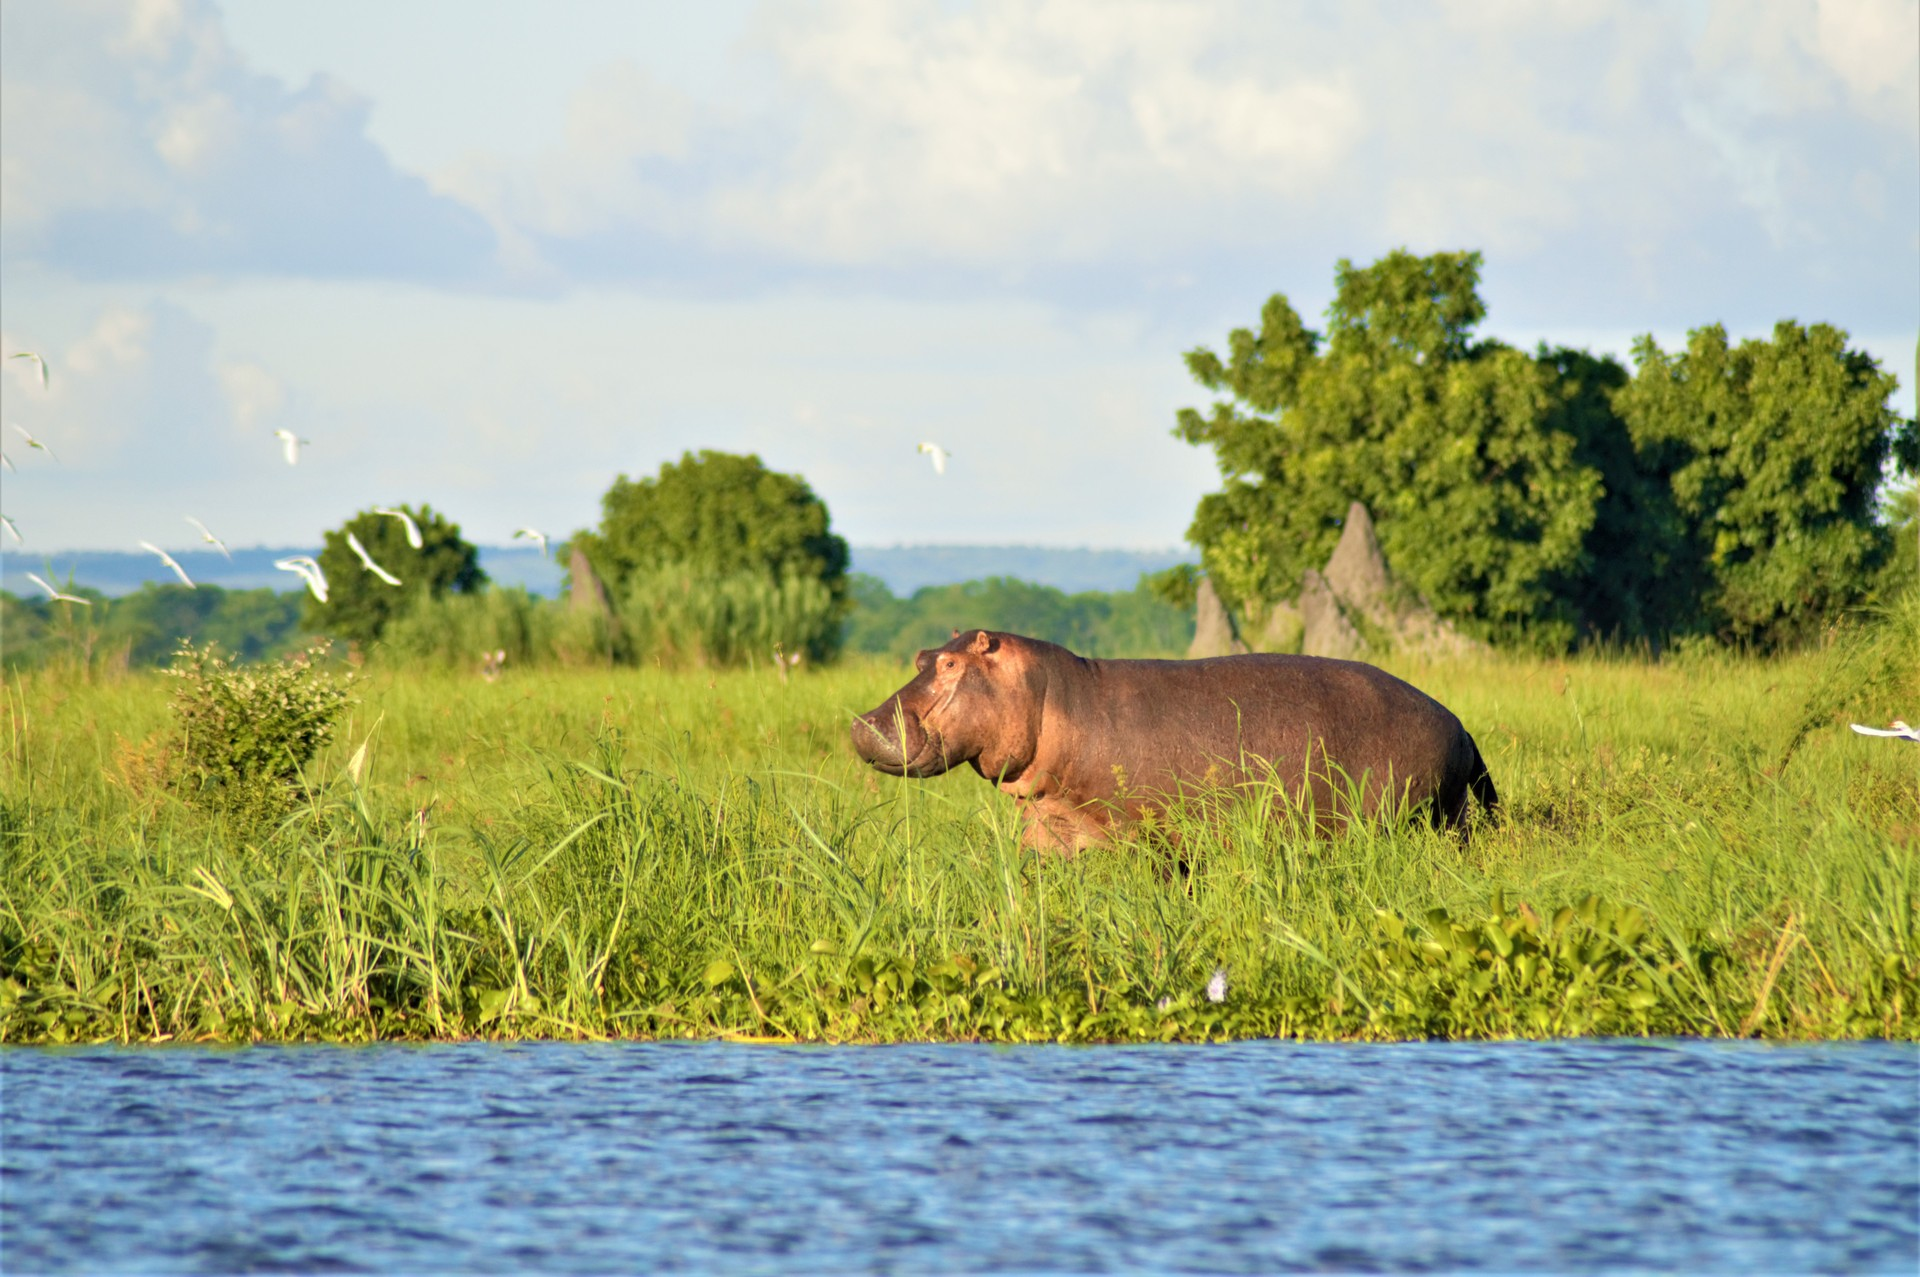 A hippo wanders along the banks of the river in Liwonde National Park